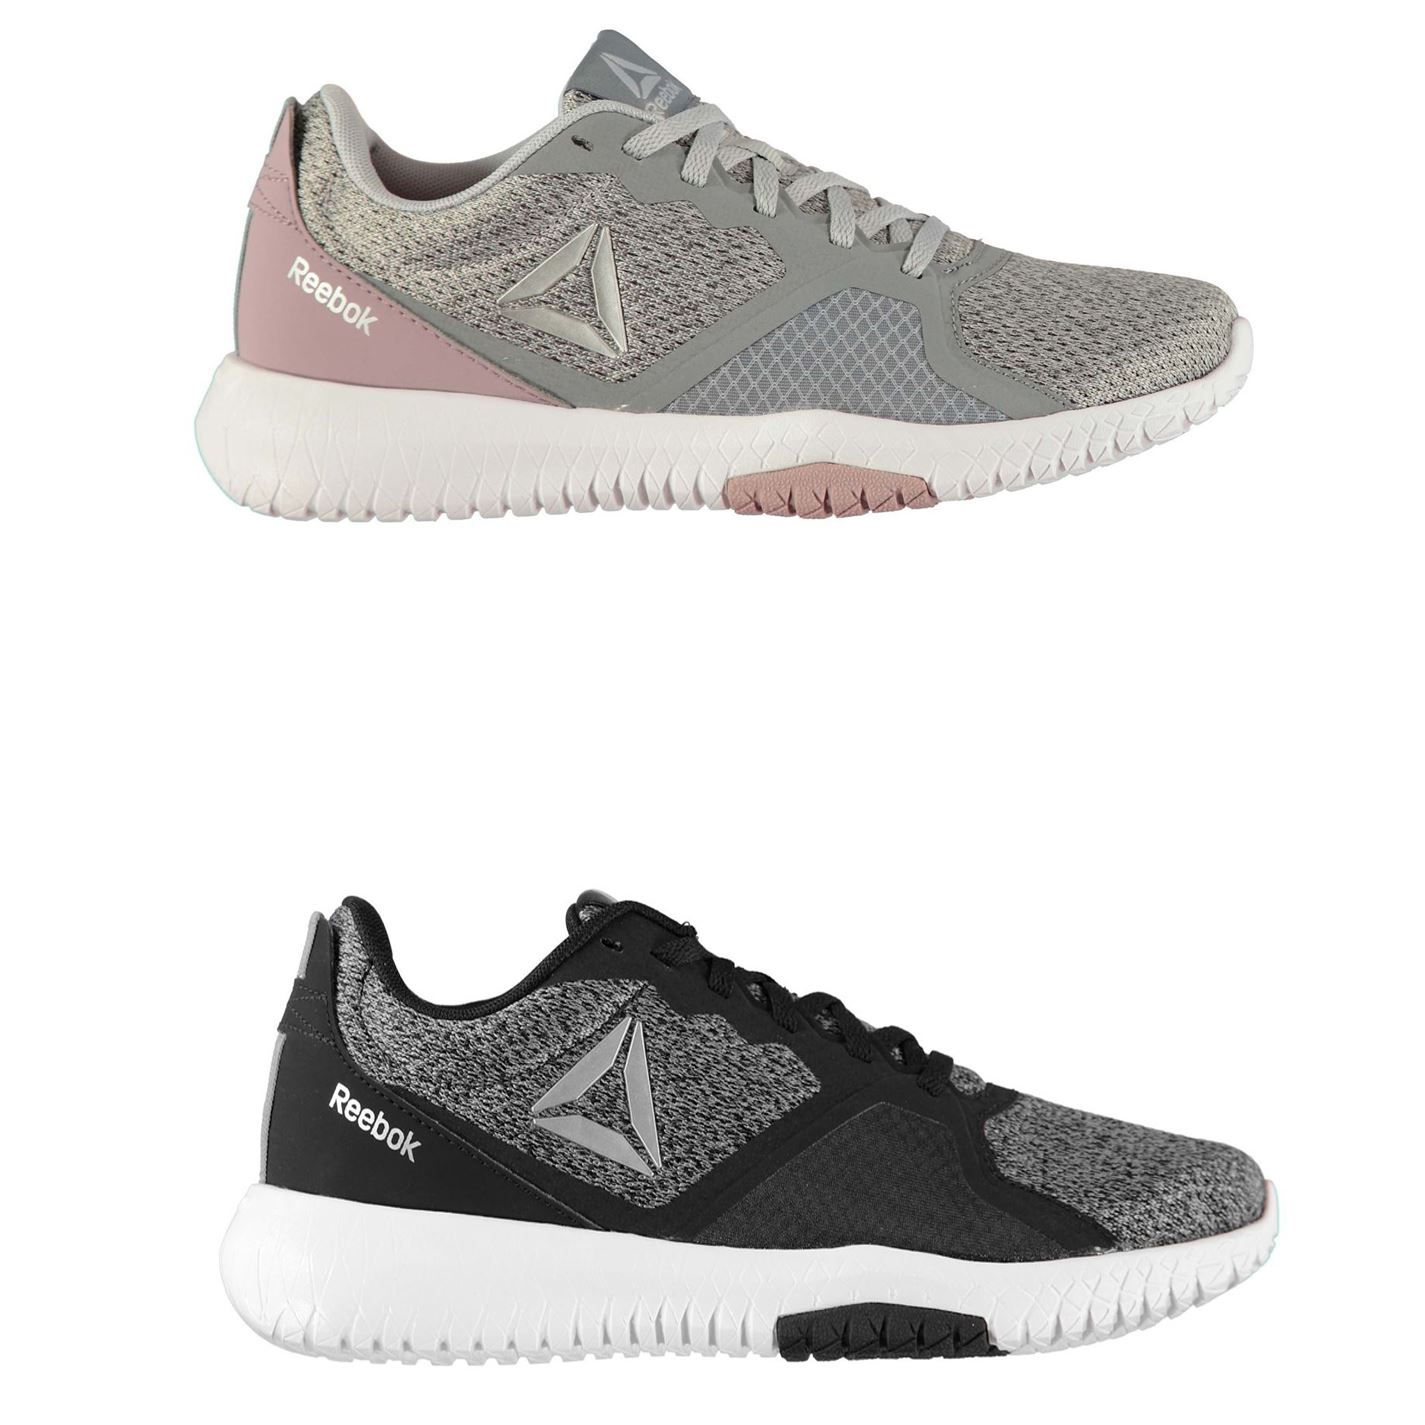 Reebok Women Shoes Trainers Wholesale Price Outlet USA